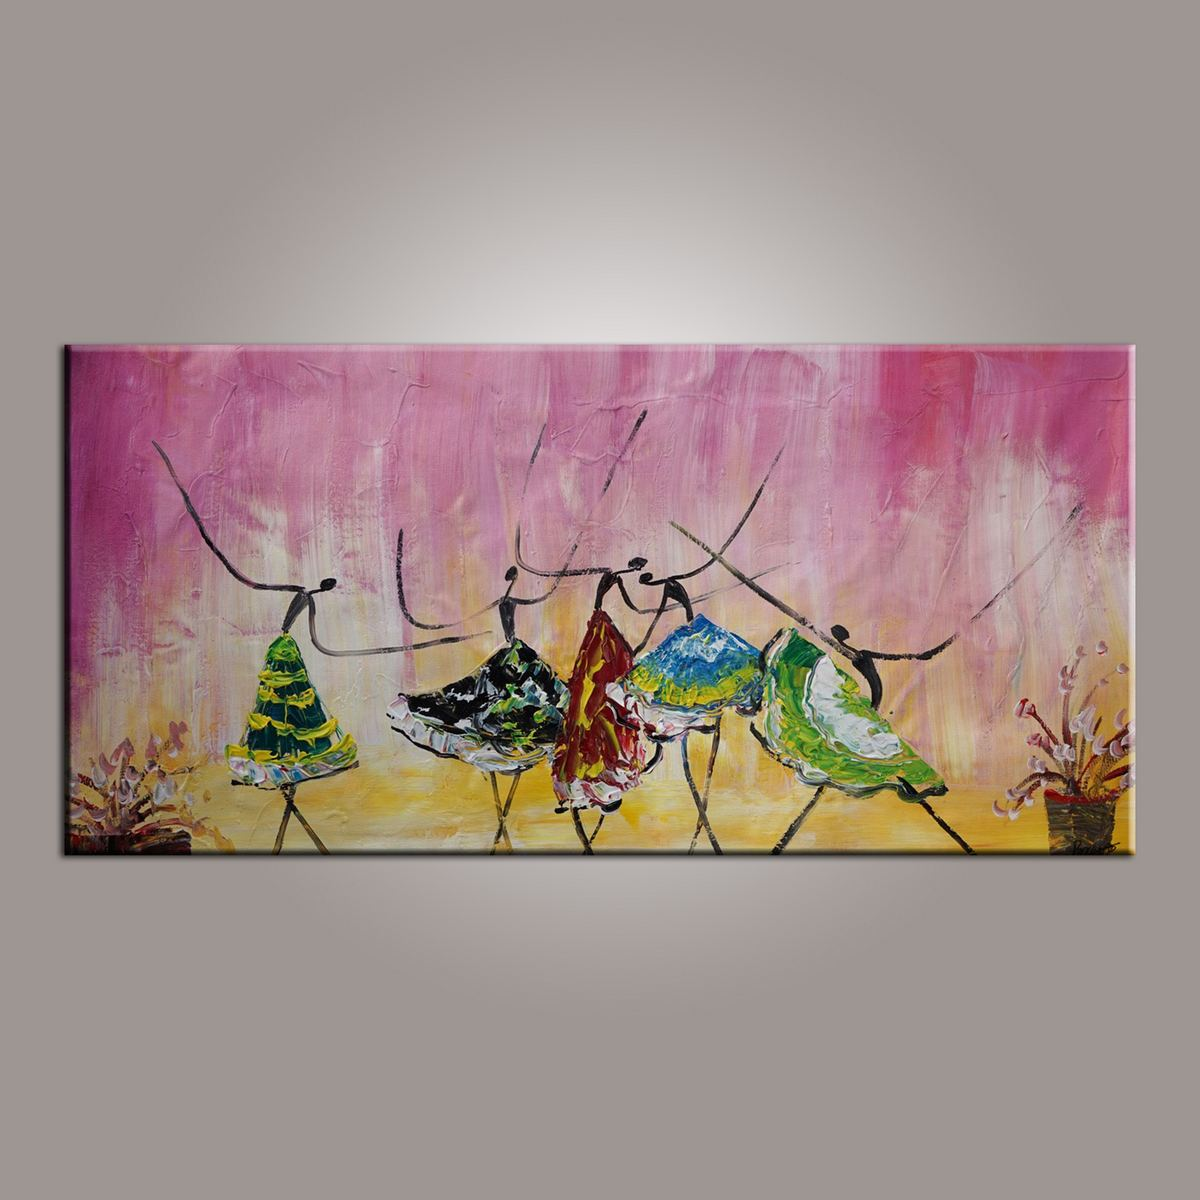 Large Art, Ballet Dancer Art, Canvas Painting, Abstract Painting, Abstract Art, Wall Art, Wall Hanging, Bedroom Wall Art, Modern Art, Painting for Sale